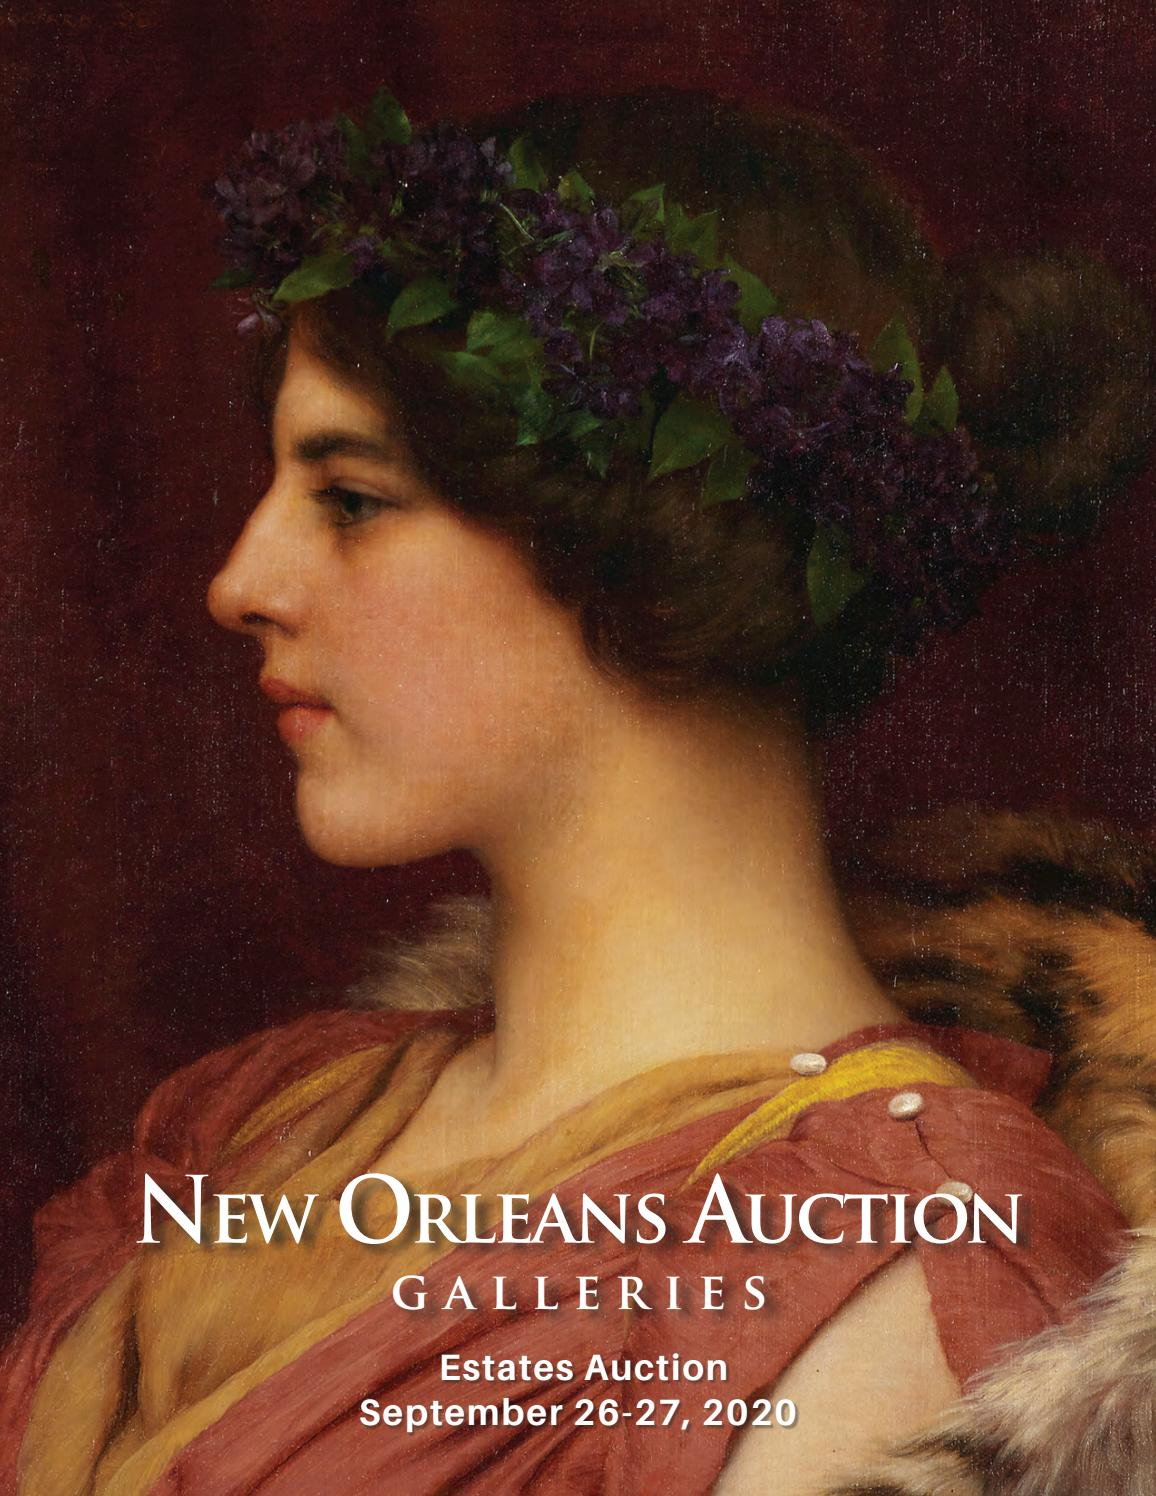 September 26 27, 2020 Estates Auction by New Orleans Auction